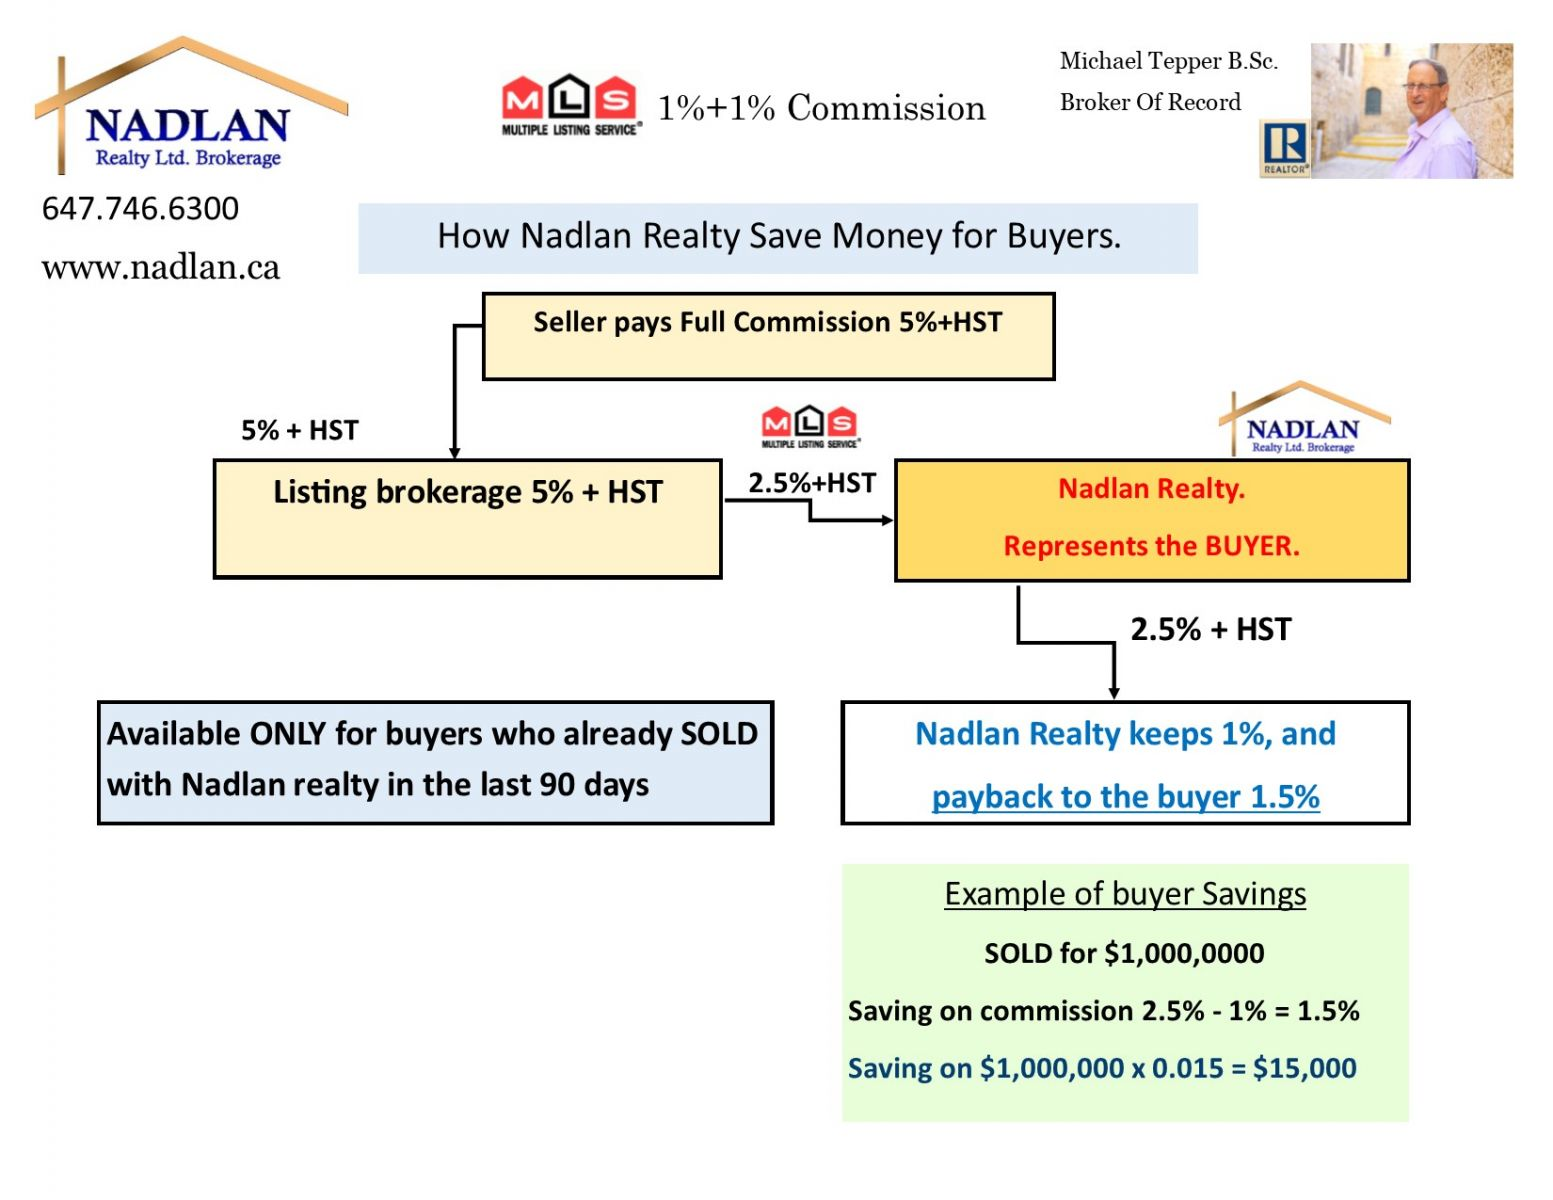 1% Buyer commission if  sold with Nadlan realty in last 90 days